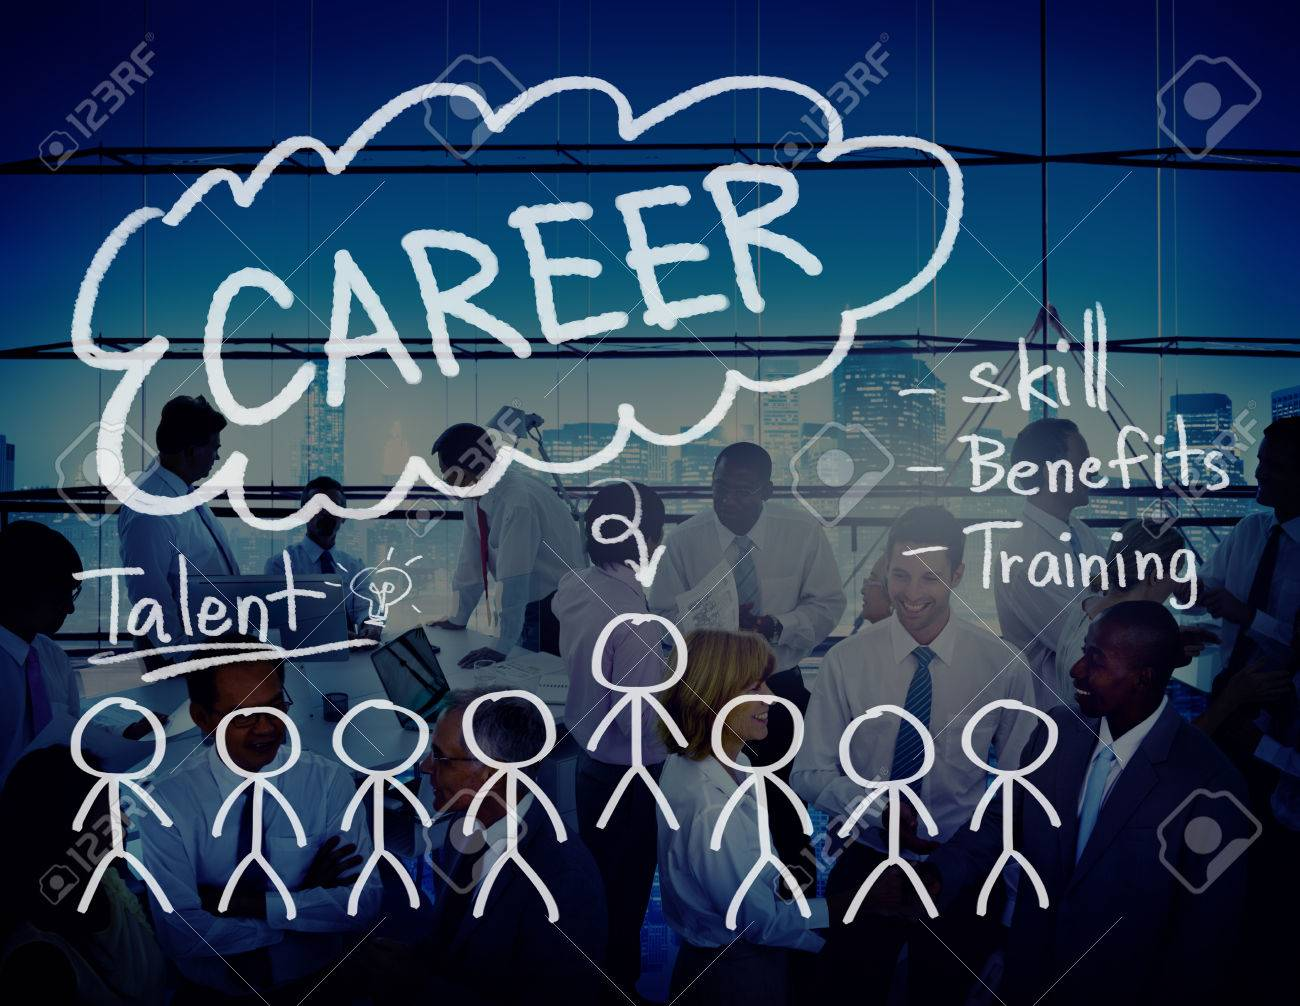 Careers - Employment Call of the Wild